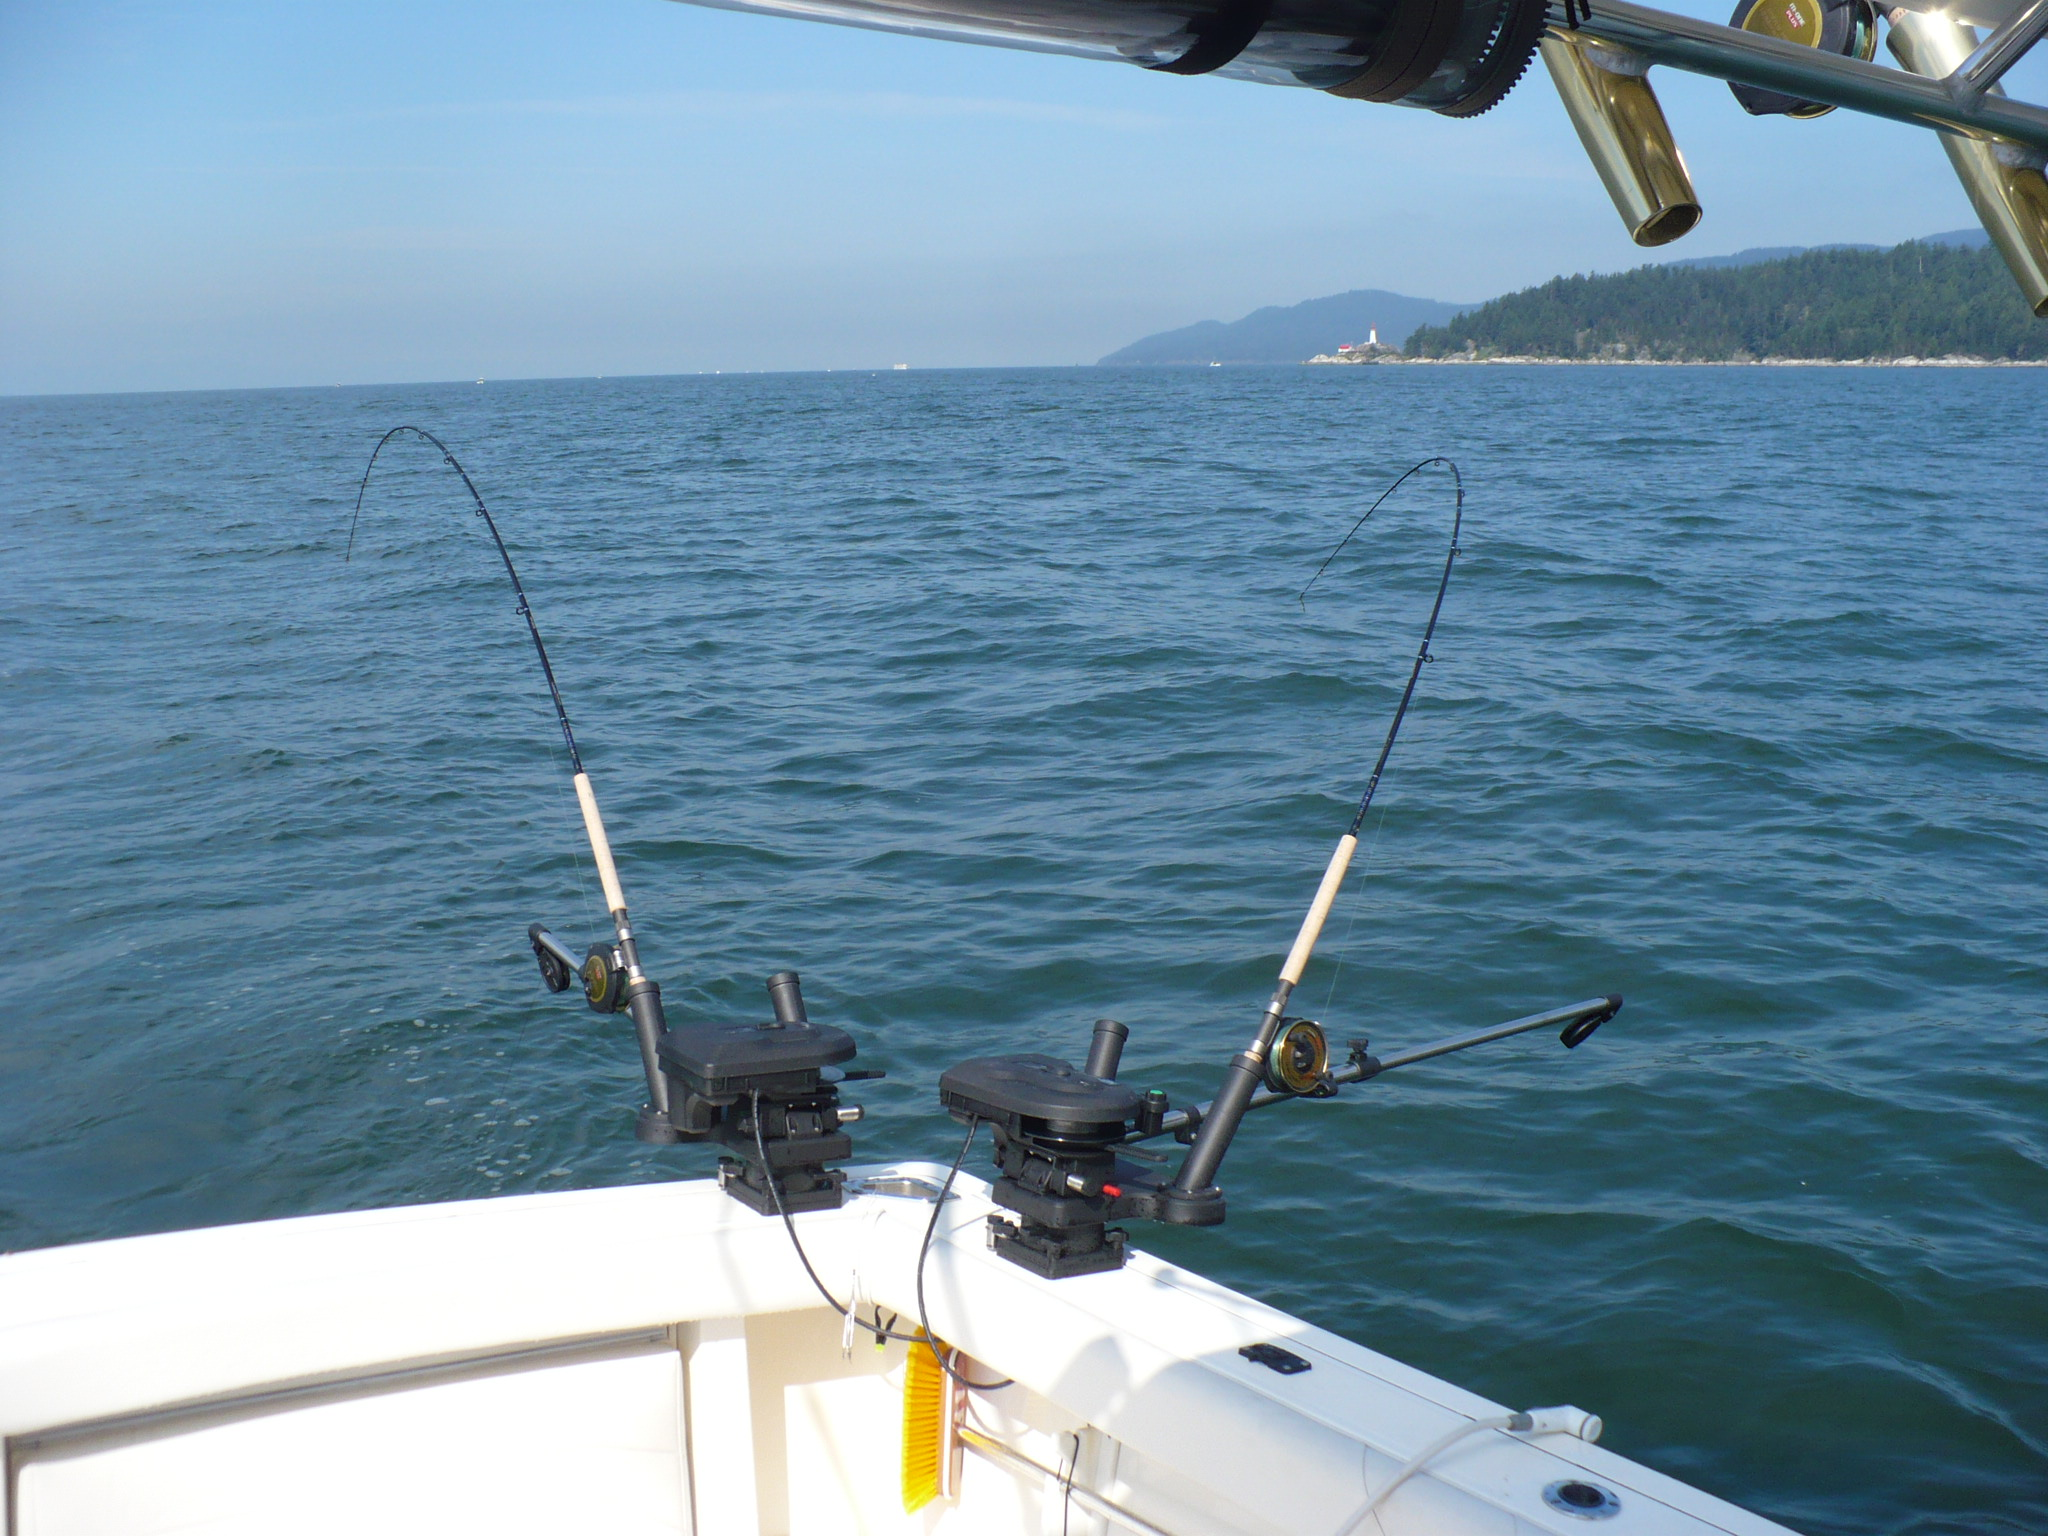 Salmon fishing english bay picture tag vancouver for Salmon fishing charters